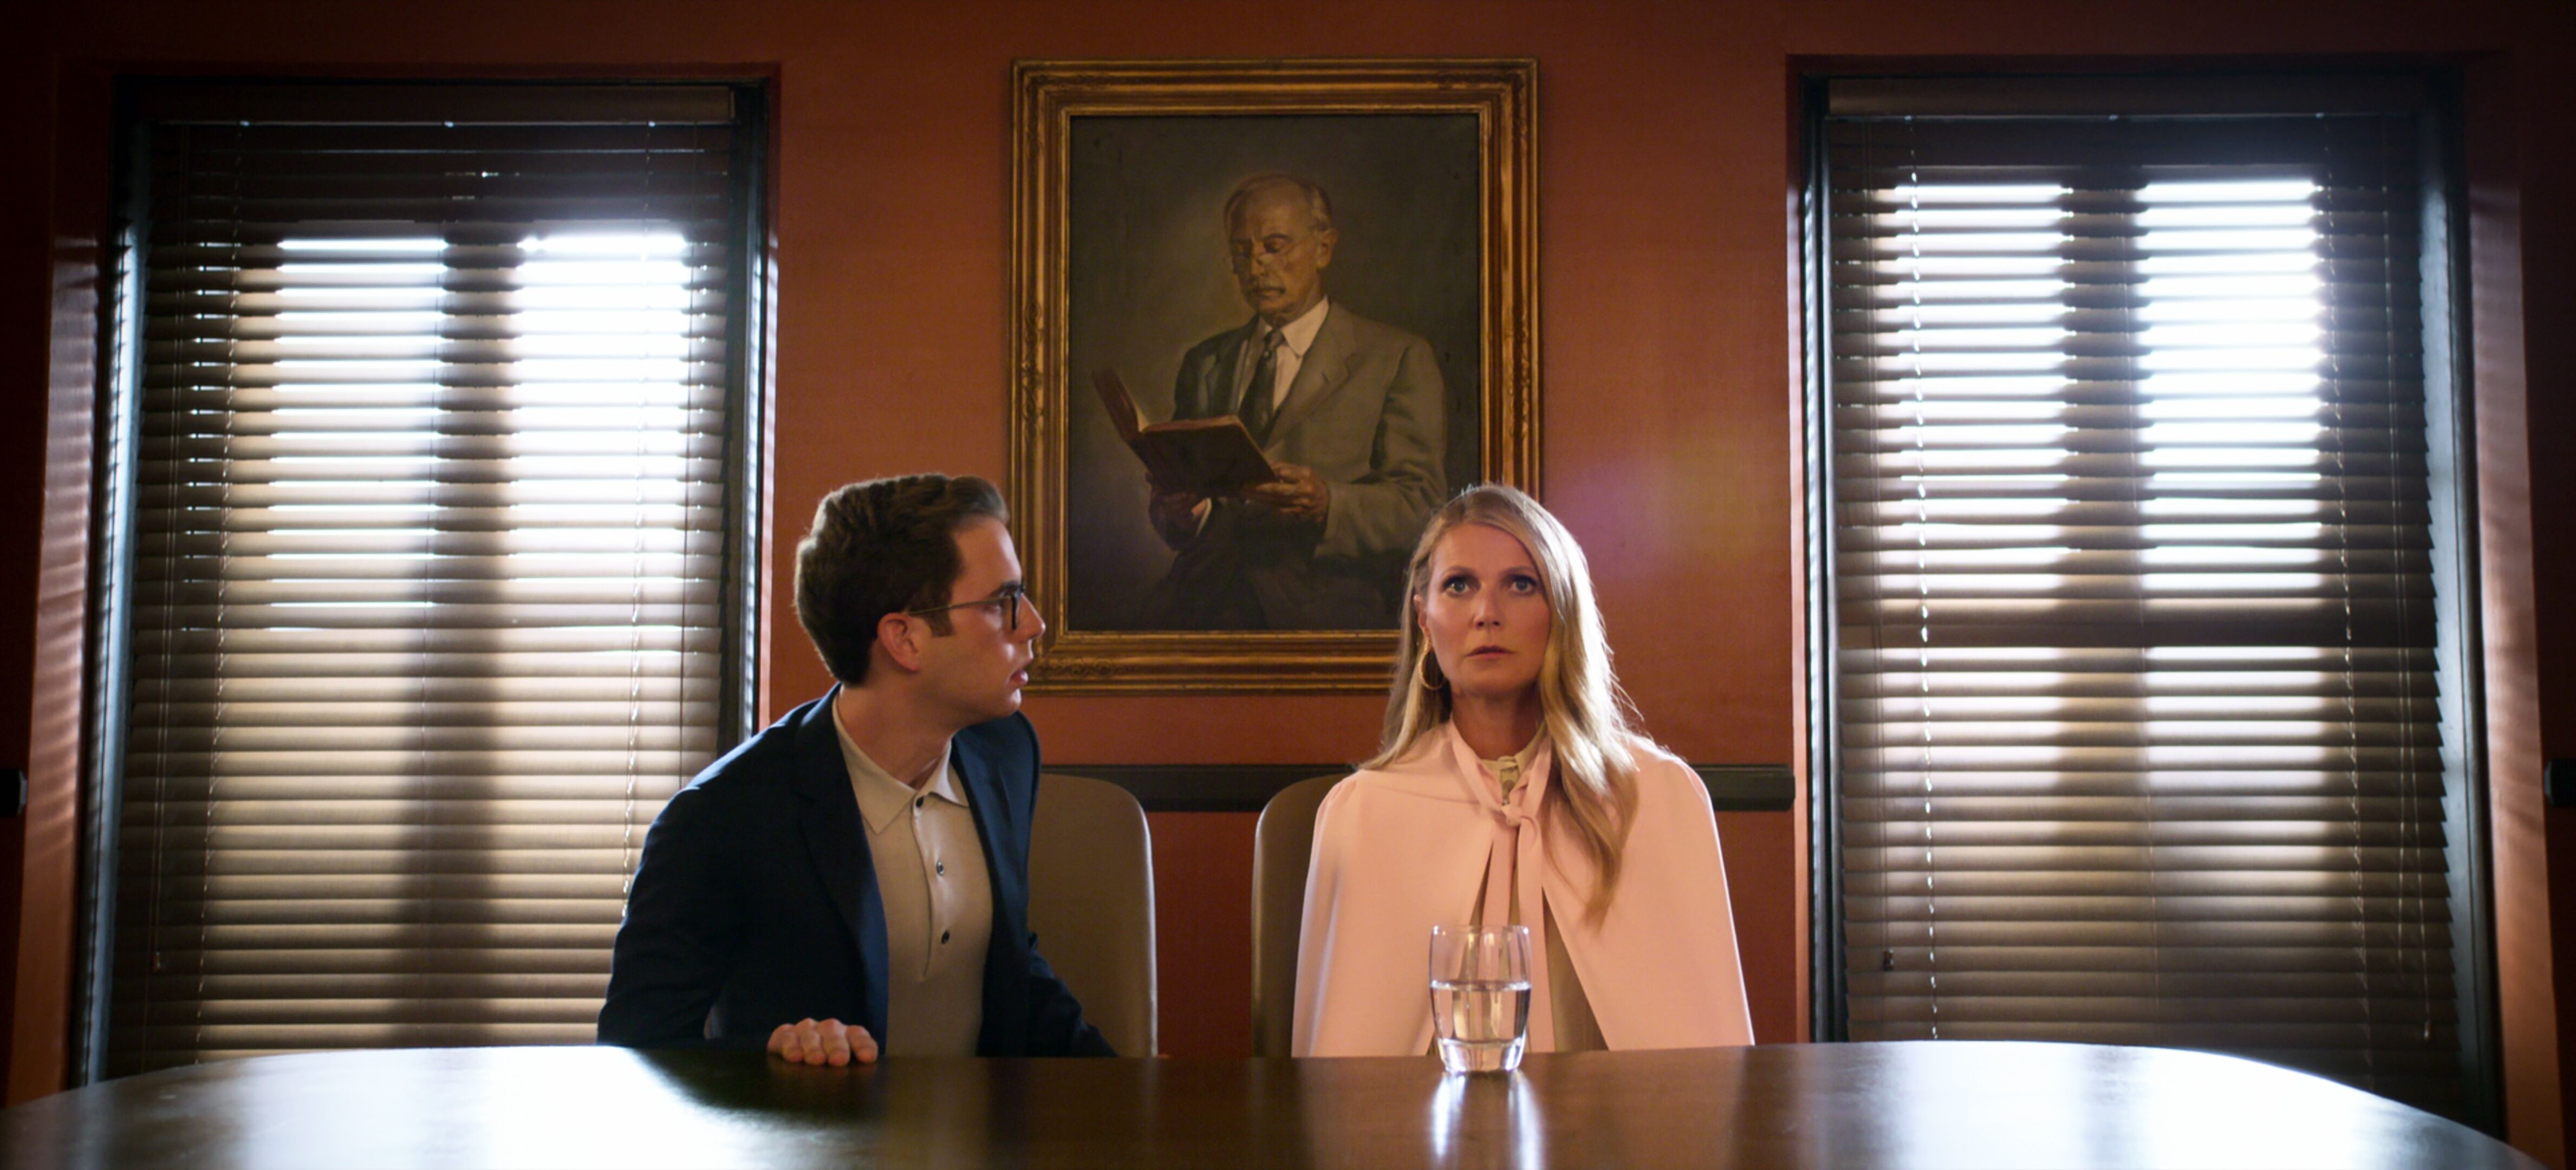 The Politician season 1, episode 2 recap: The Harrington Commode